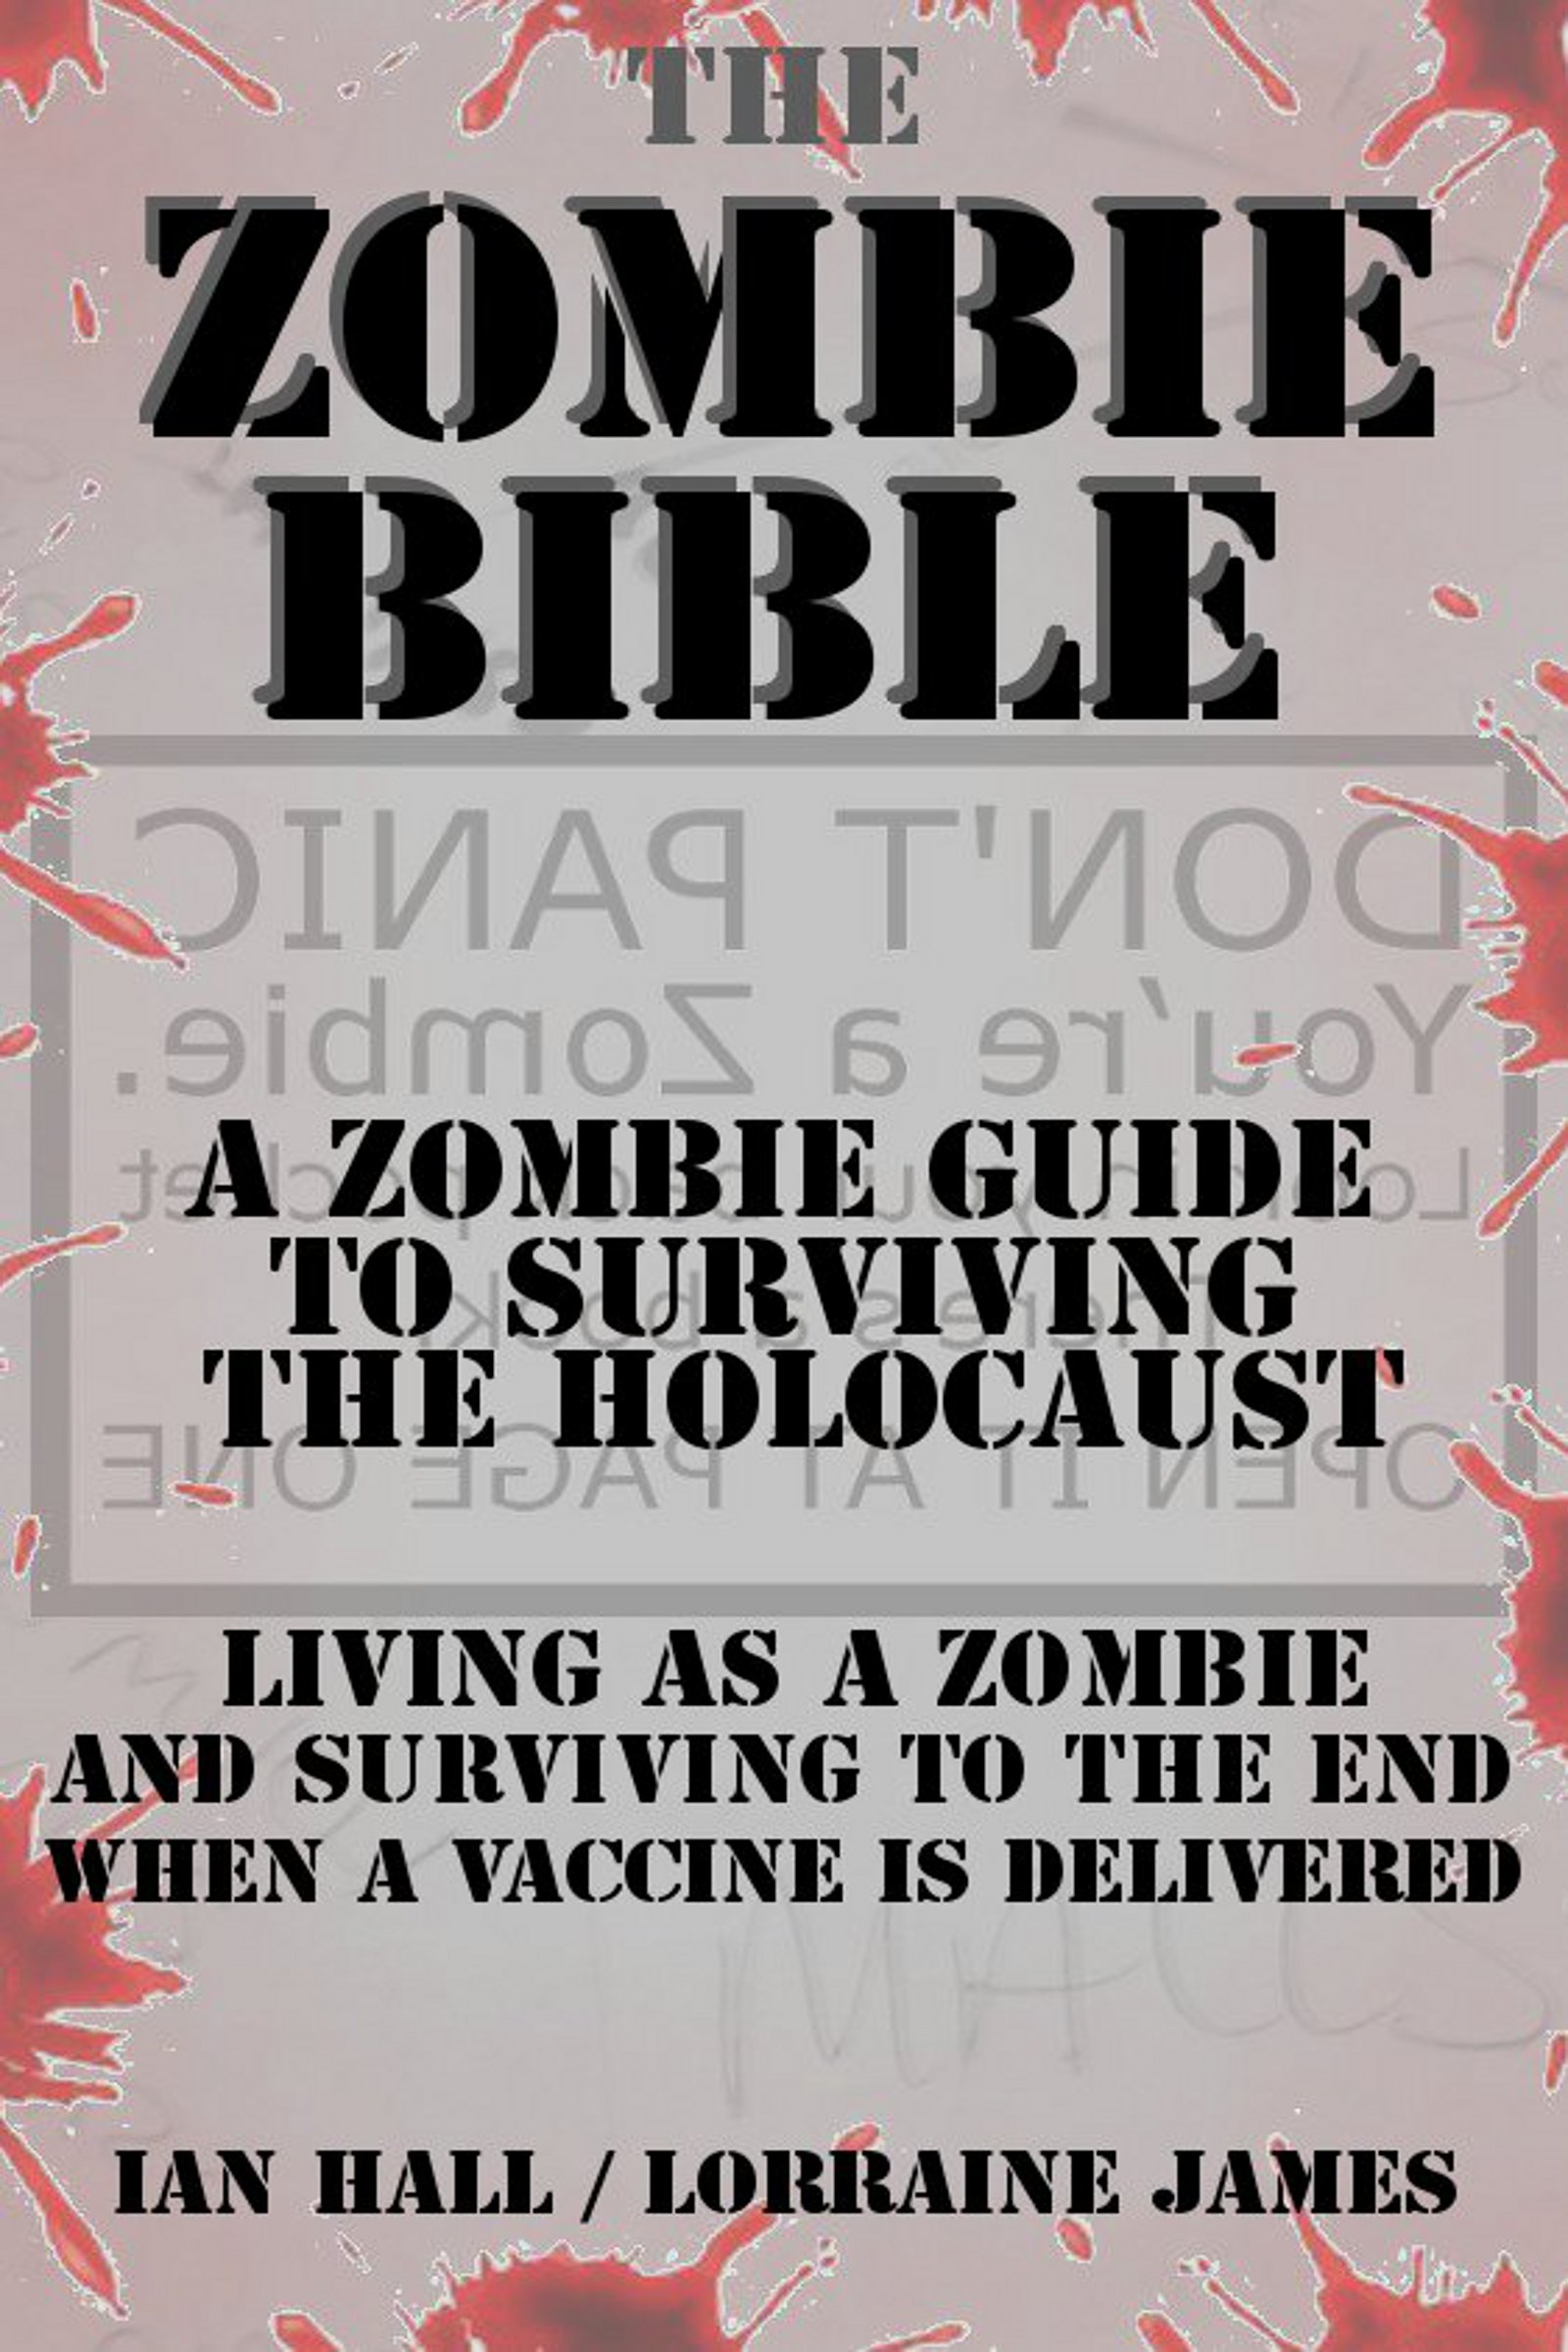 The Zombie Bible: a Zombie Guide to Surviving the Holocaust